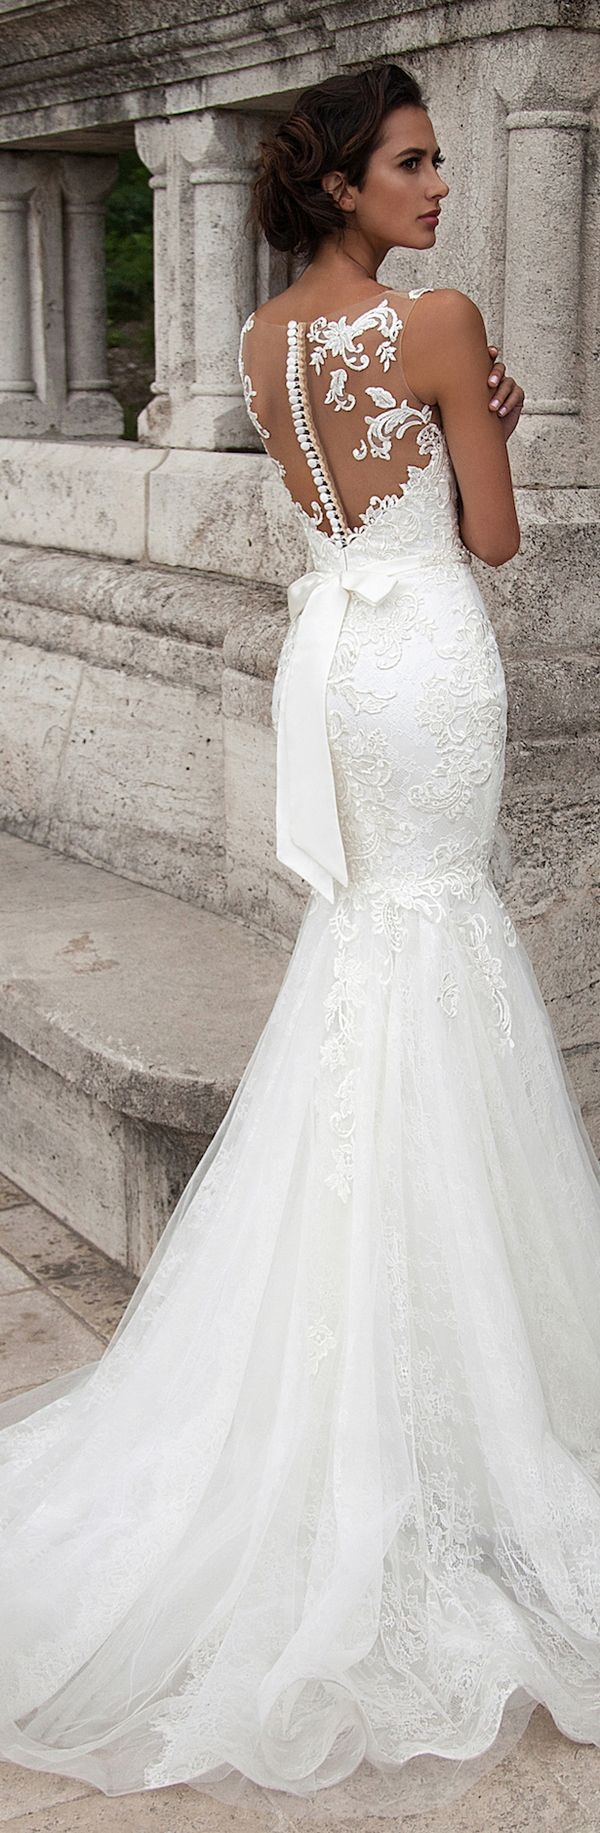 best roogy images on pinterest bridal gowns classy dress and